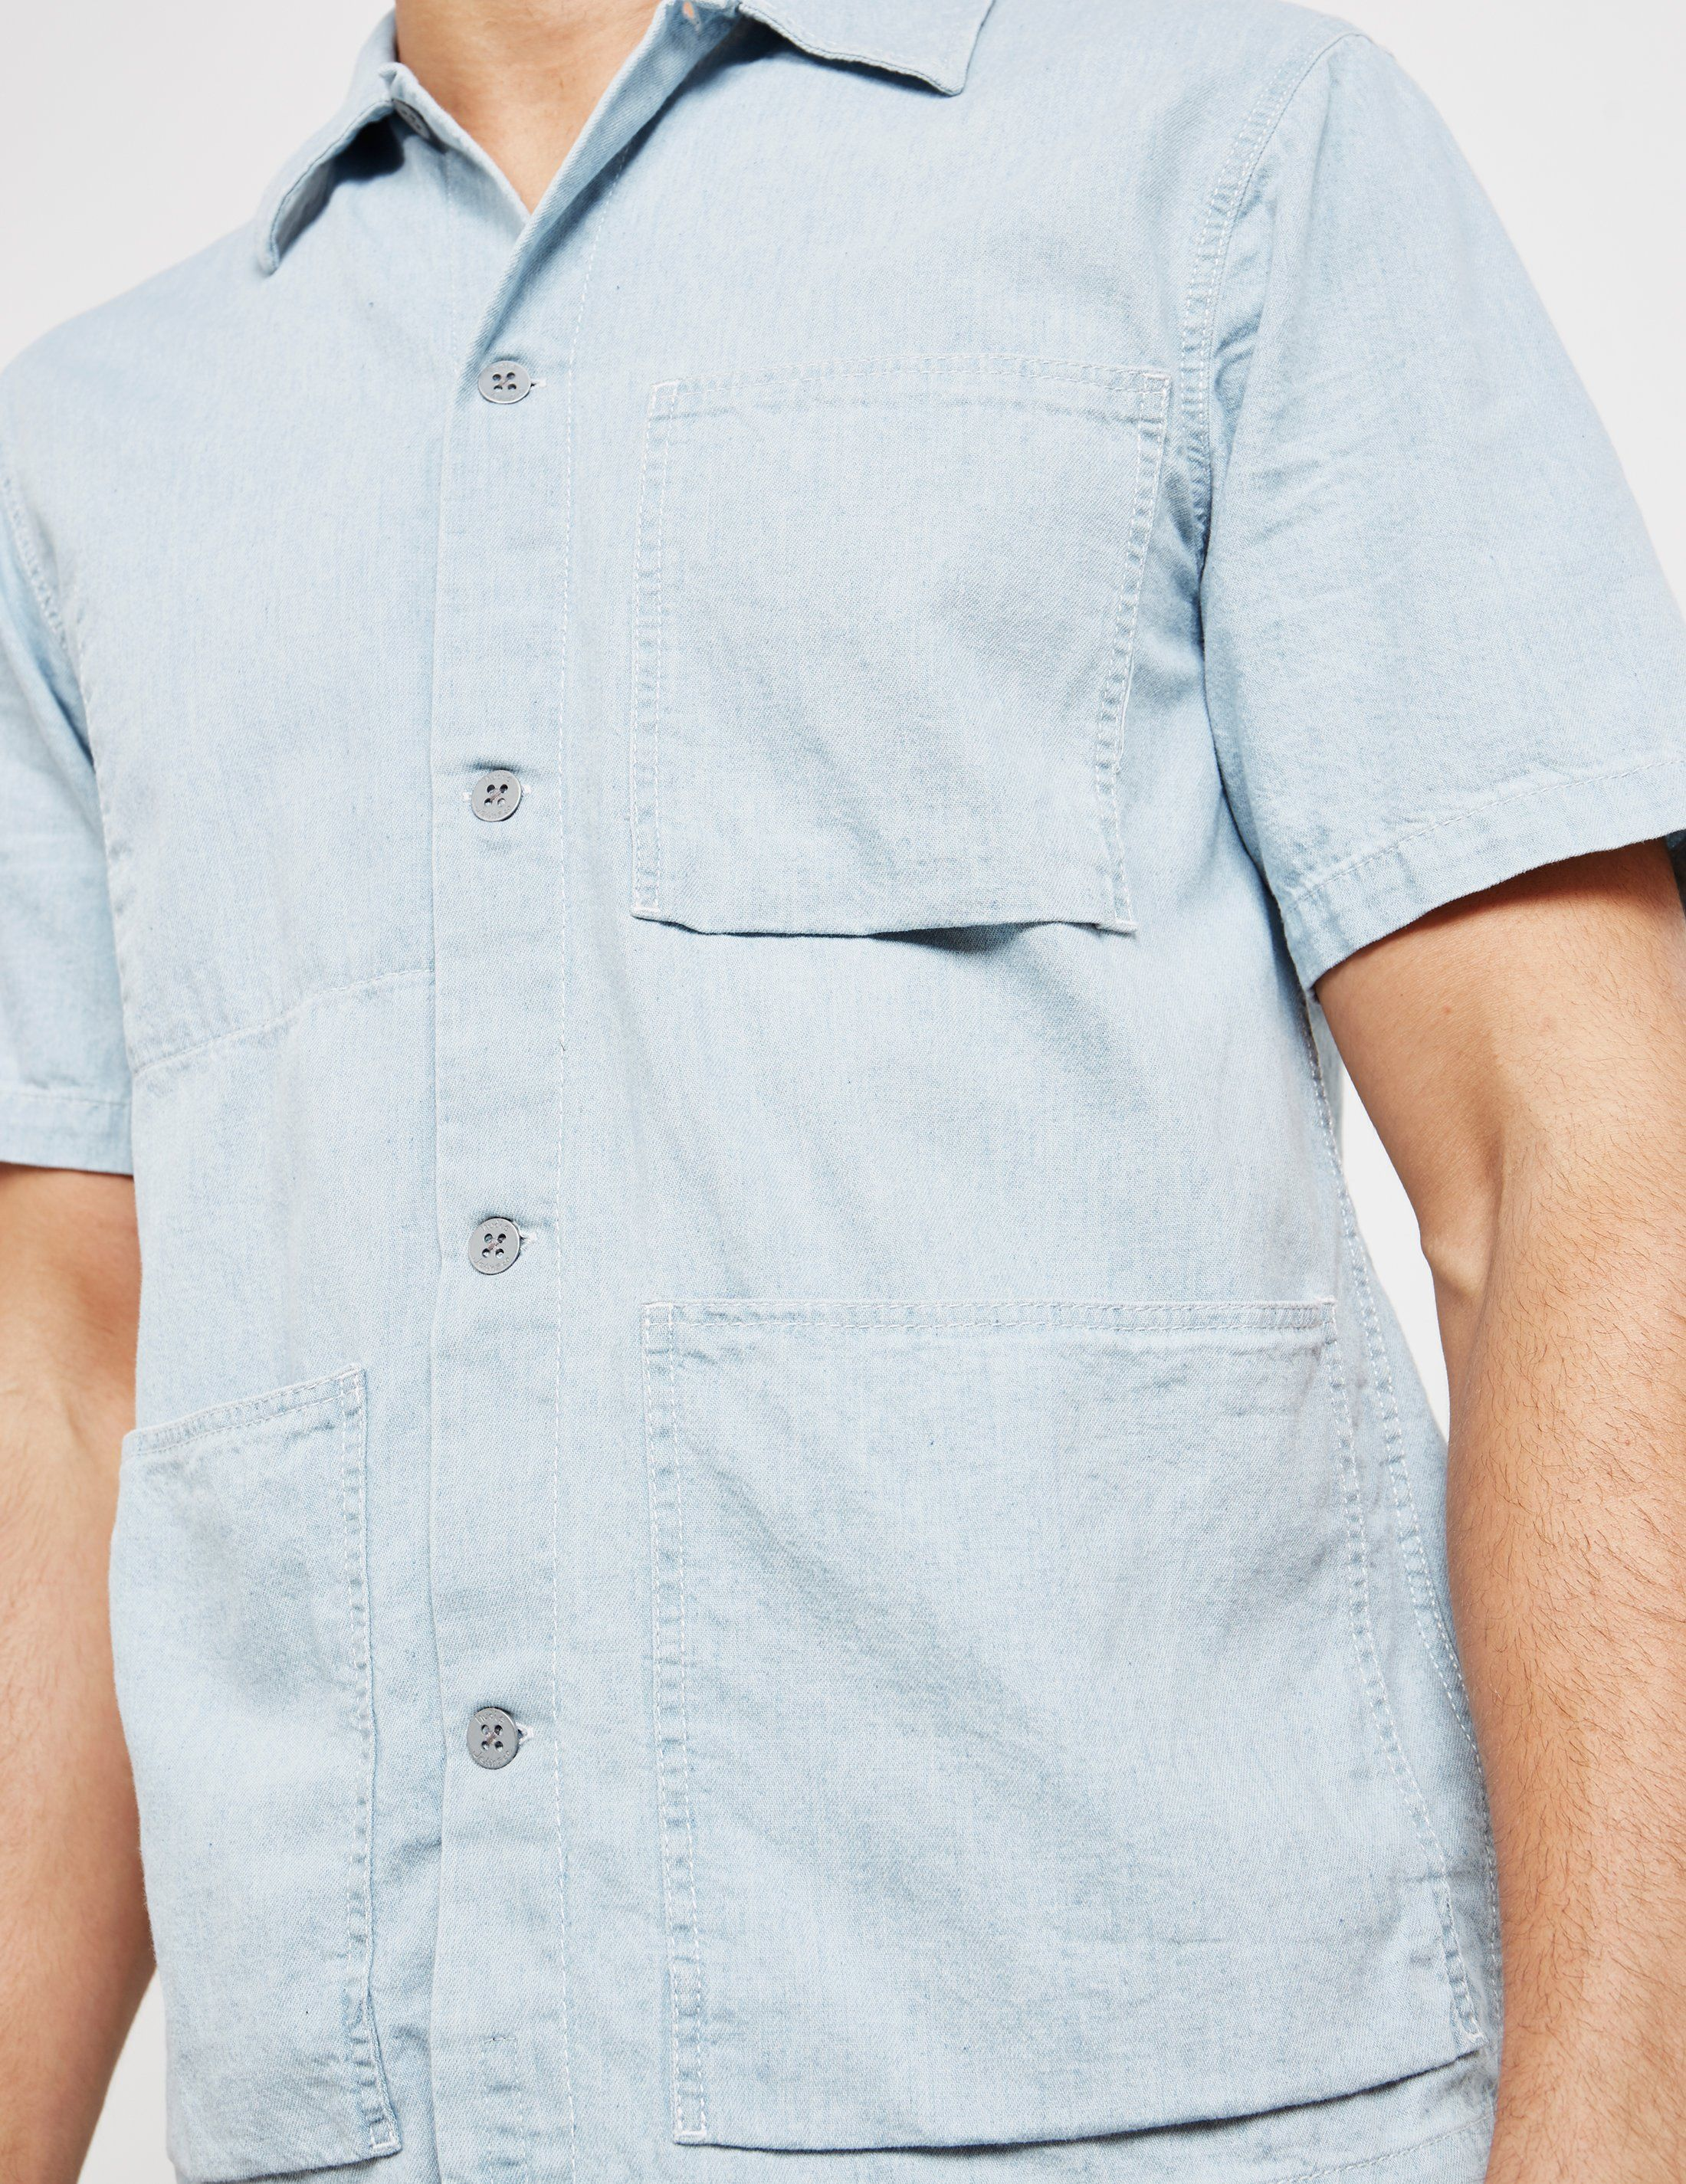 Nudie Jeans Denim Worker Short Sleeve Shirt